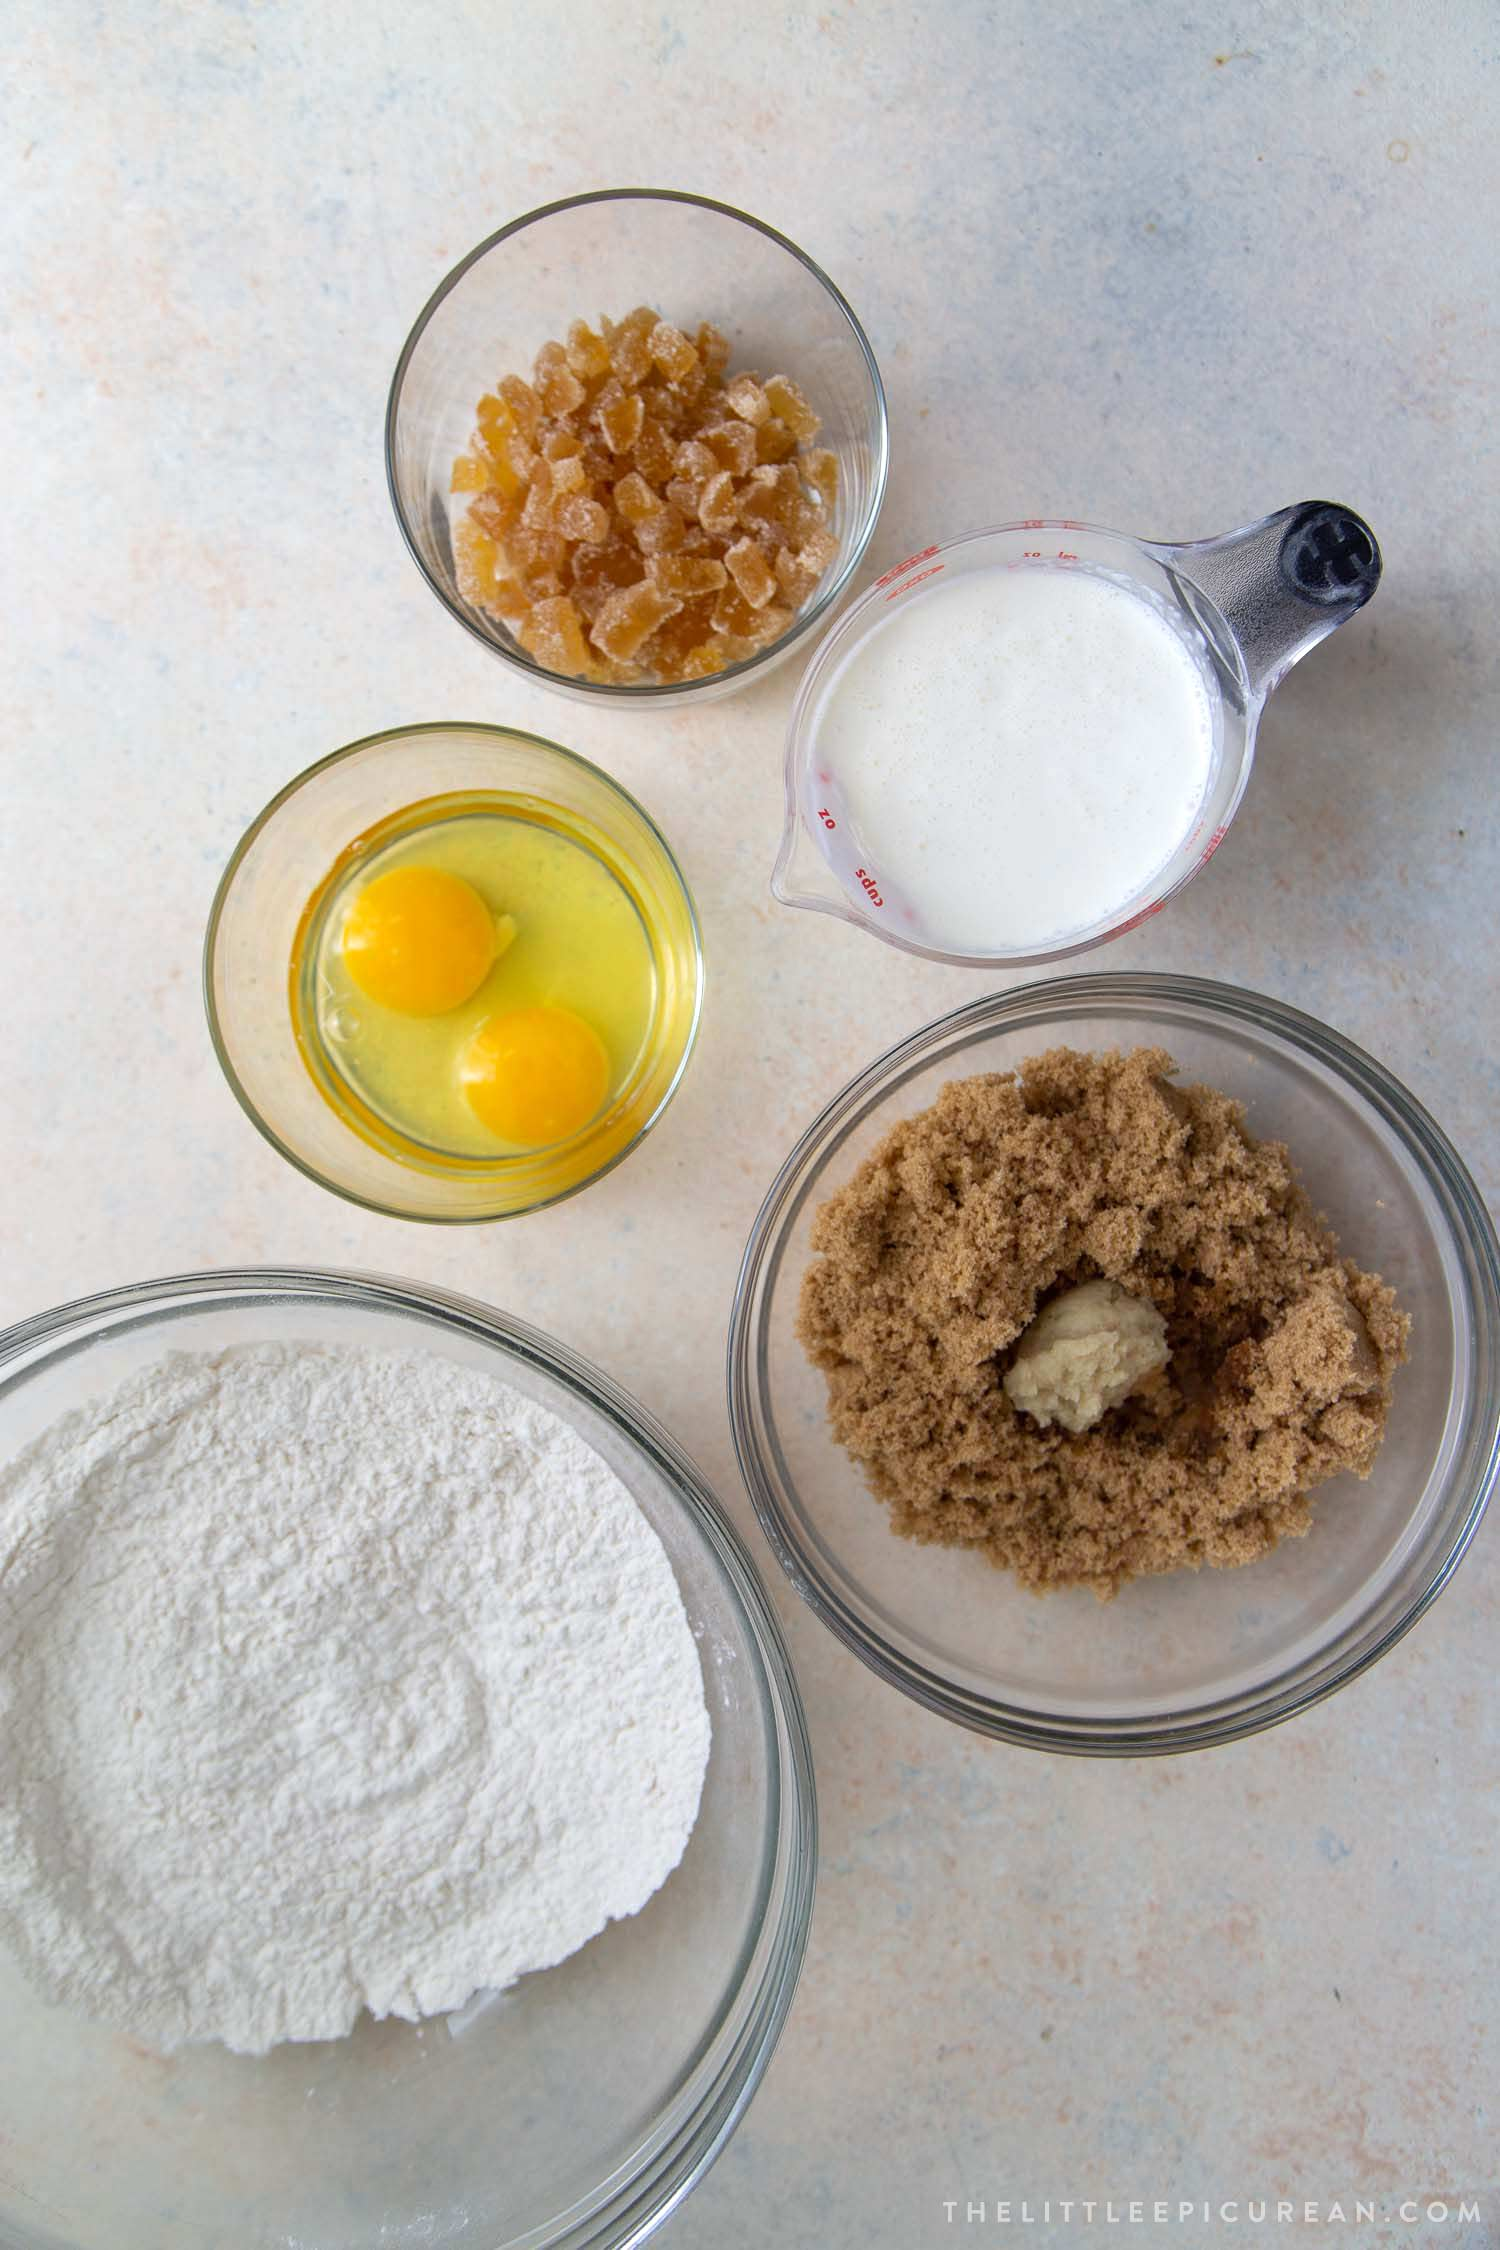 Ginger Cake Ingredients. This cake doesn't have any butter or oil. The cake is leavened by baking powder, beaten eggs, and whipped cream.